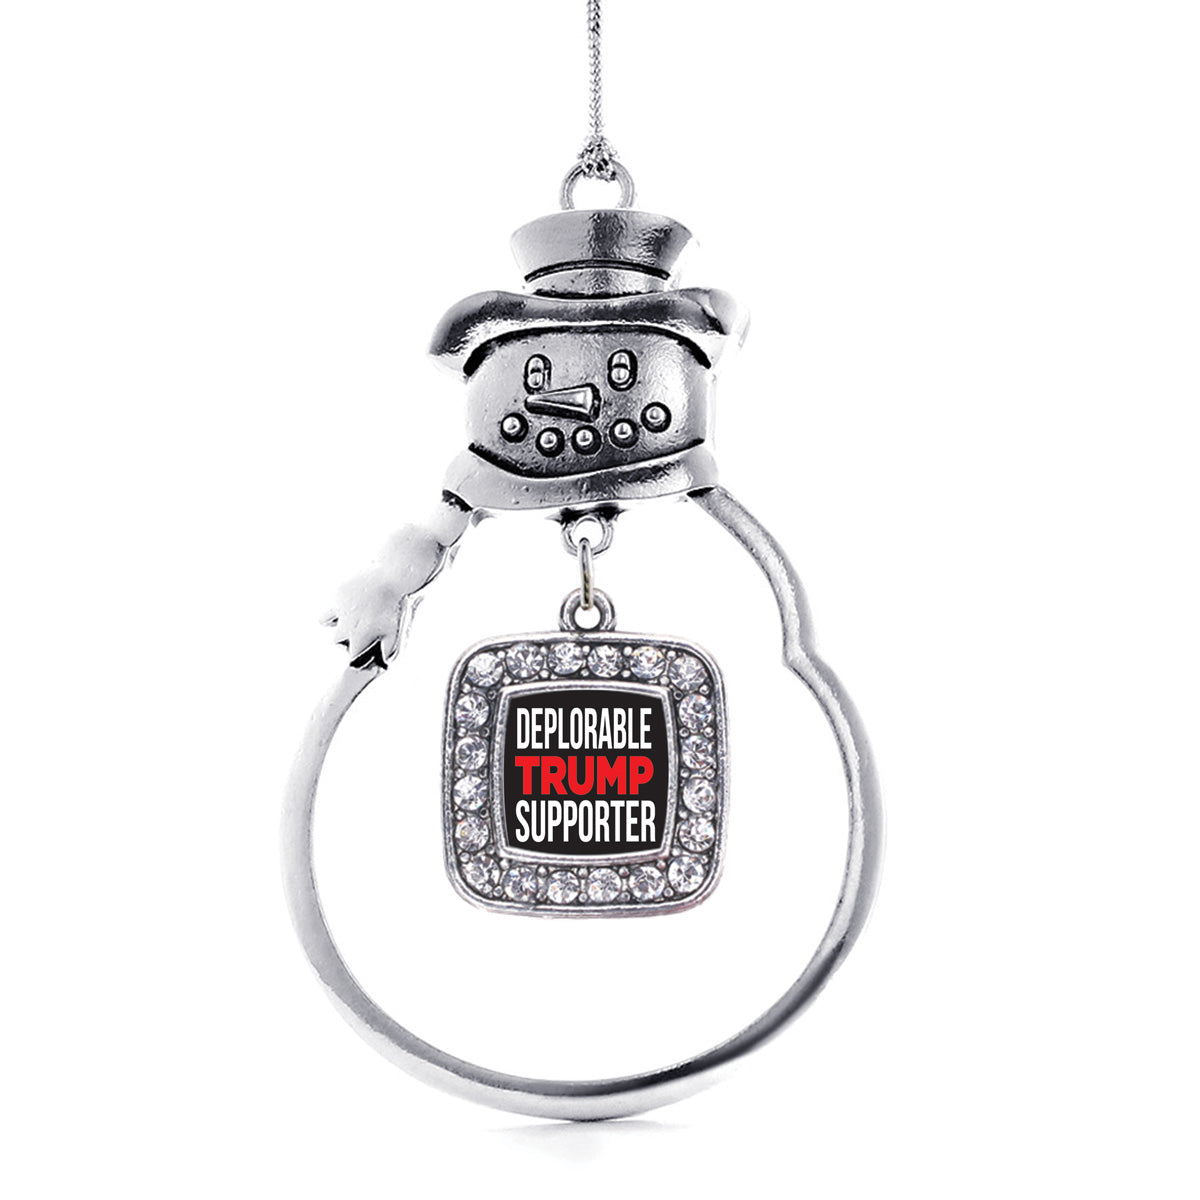 Deplorable Trump Supporter Square Charm Christmas / Holiday Ornament